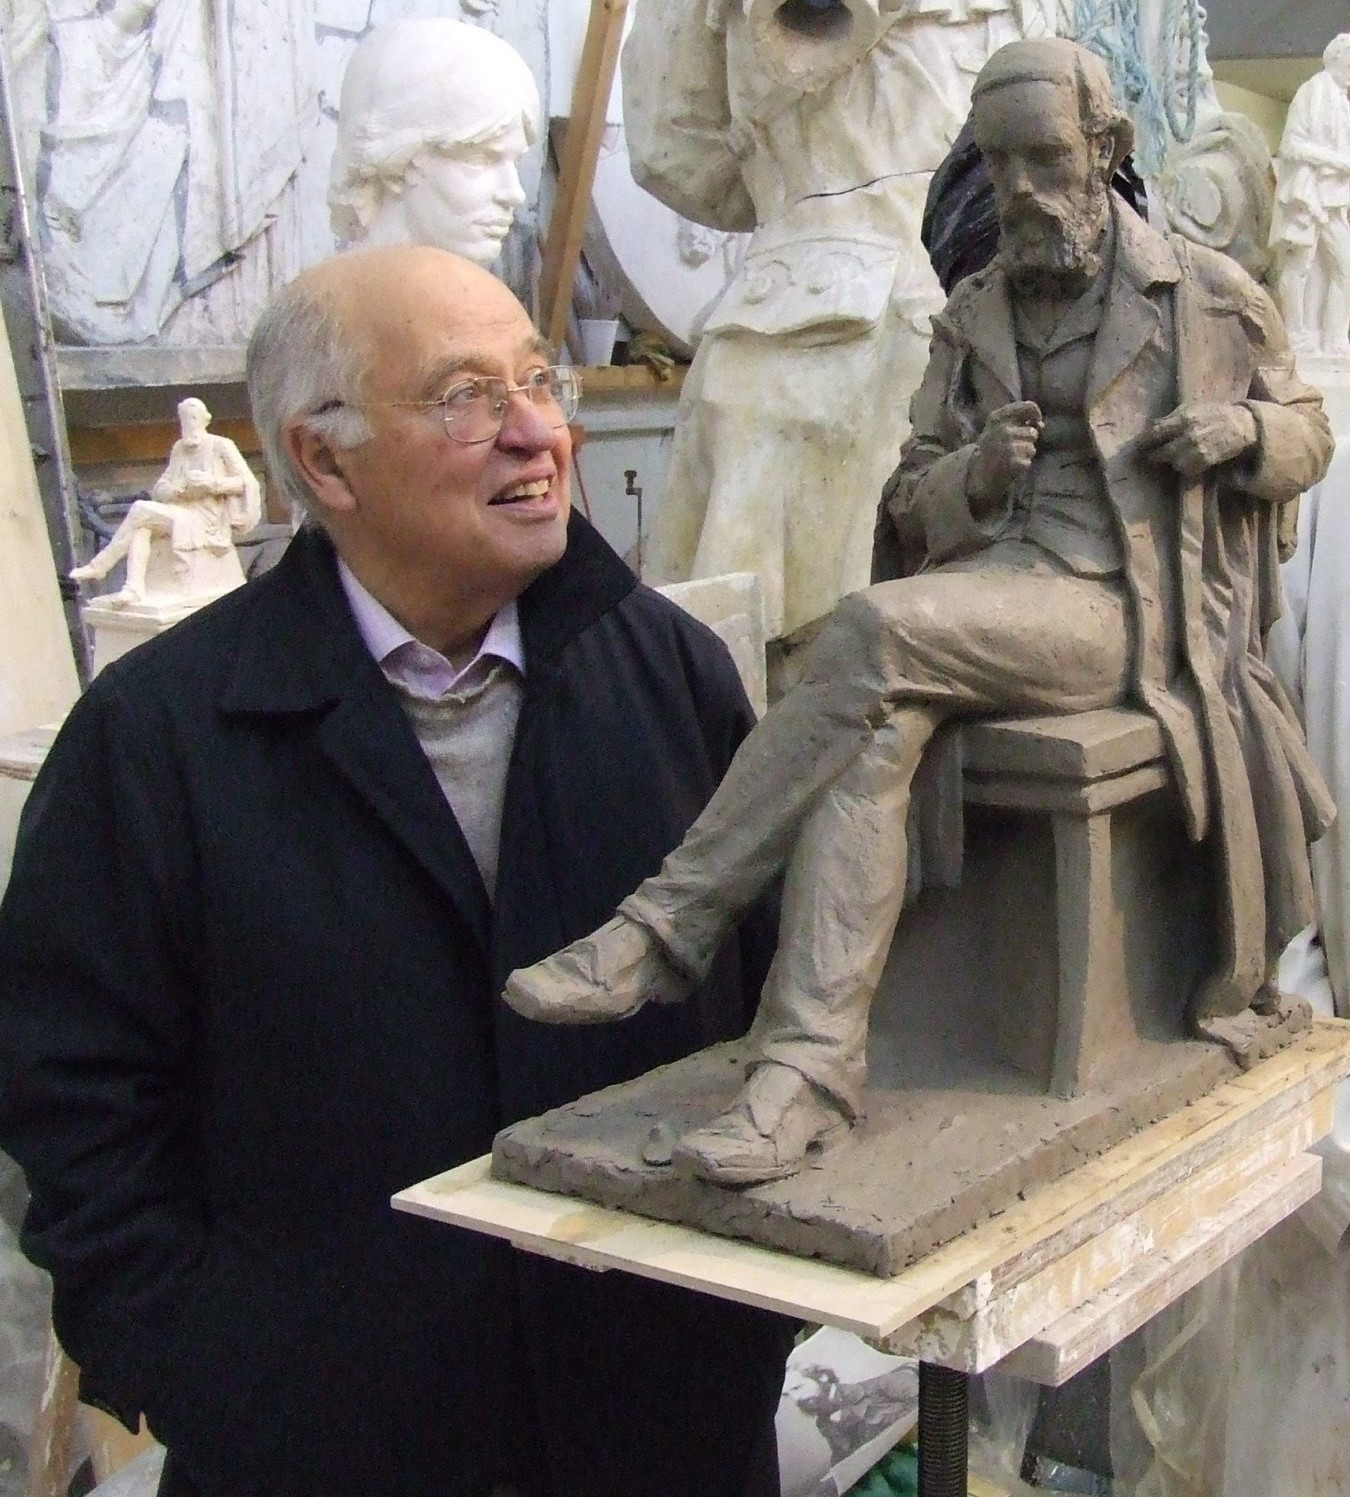 Sir Michael Atiyah with a model of the statue of James Clerk Maxwell